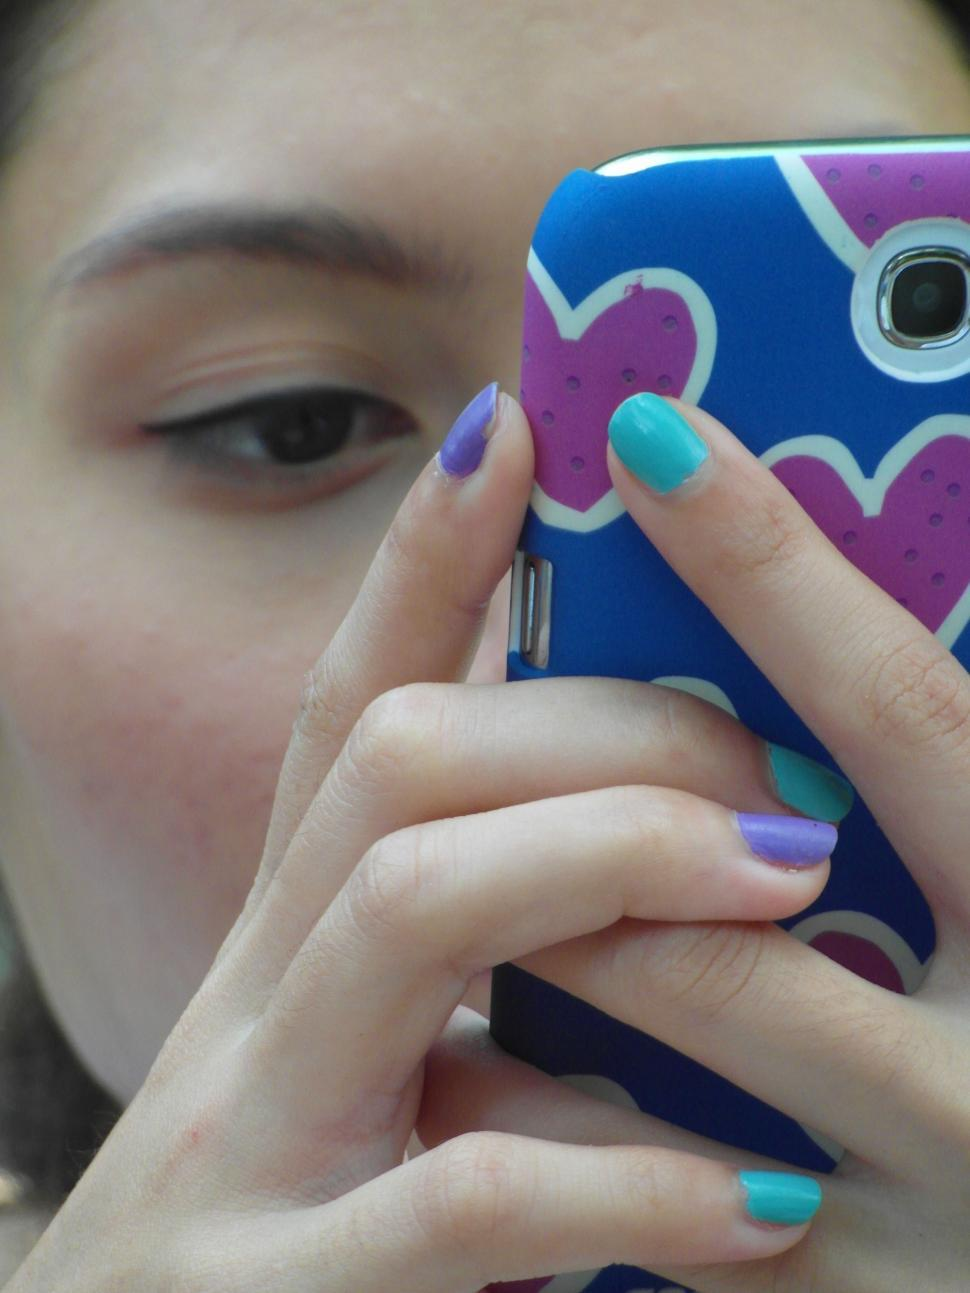 Download Free Stock HD Photo of Girl Using Touch Screen Phone Online